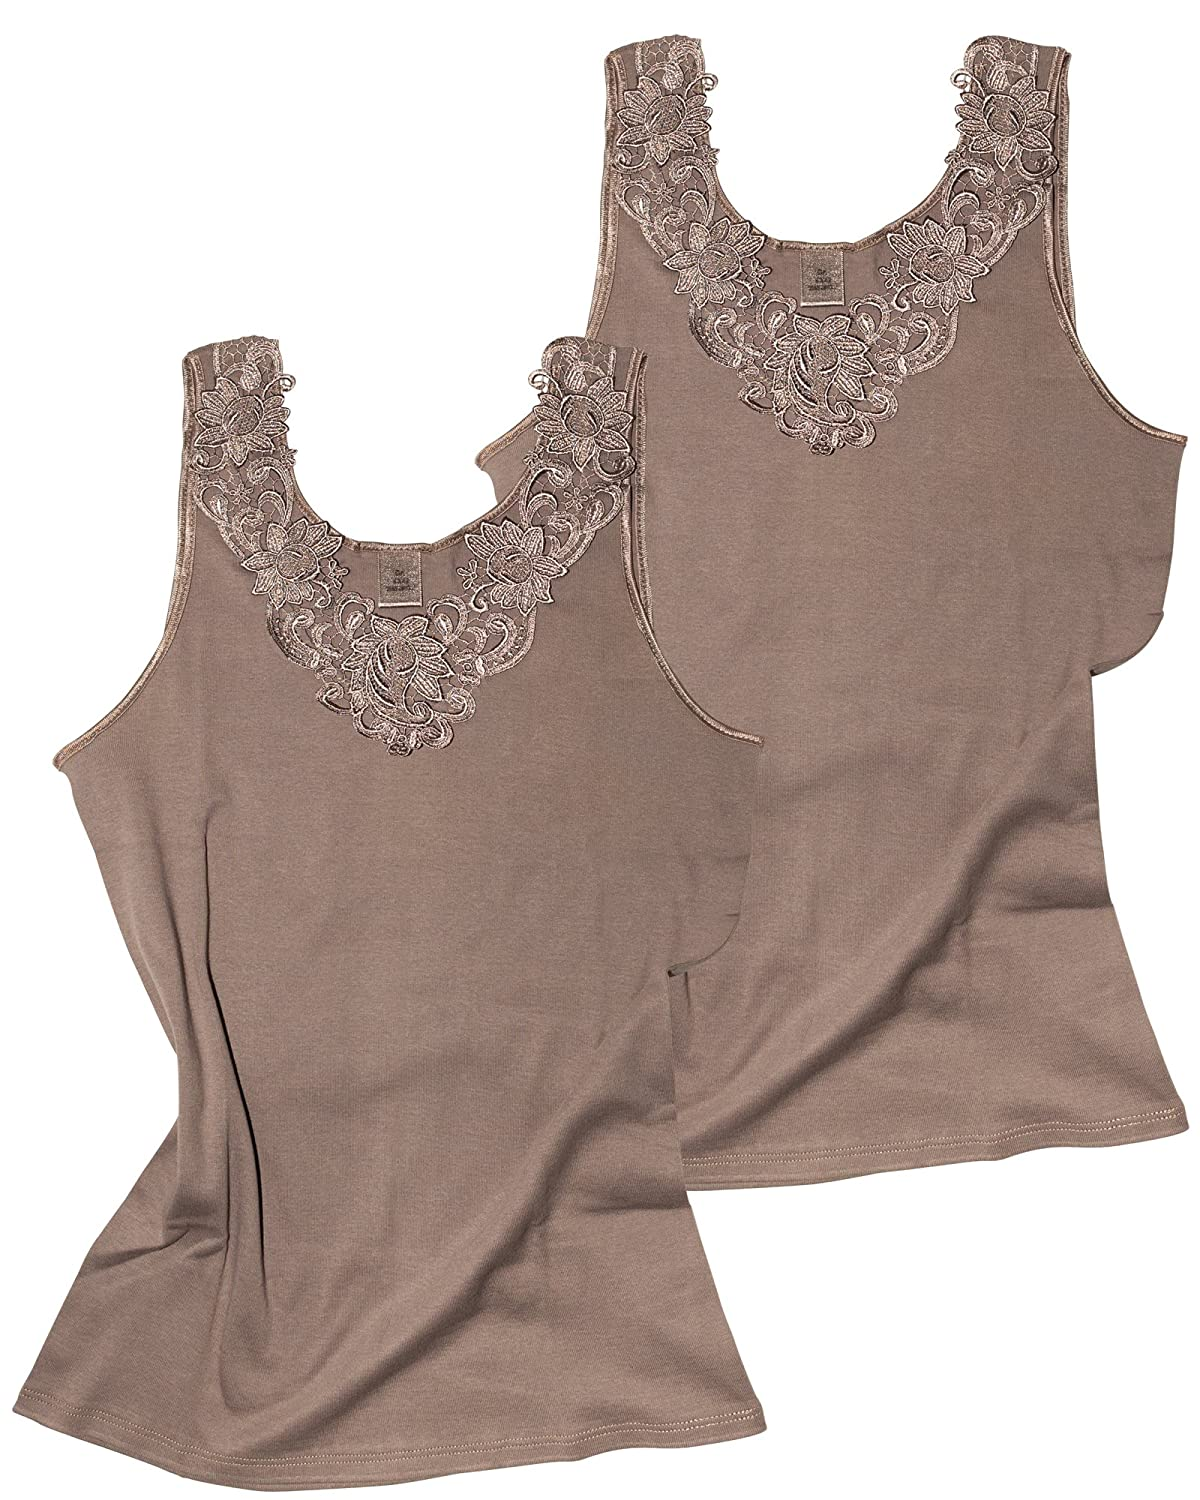 Yenita Womens Cotton Camisole Undershirt with Lace 100/% Cotton Tank Top Pack of 2